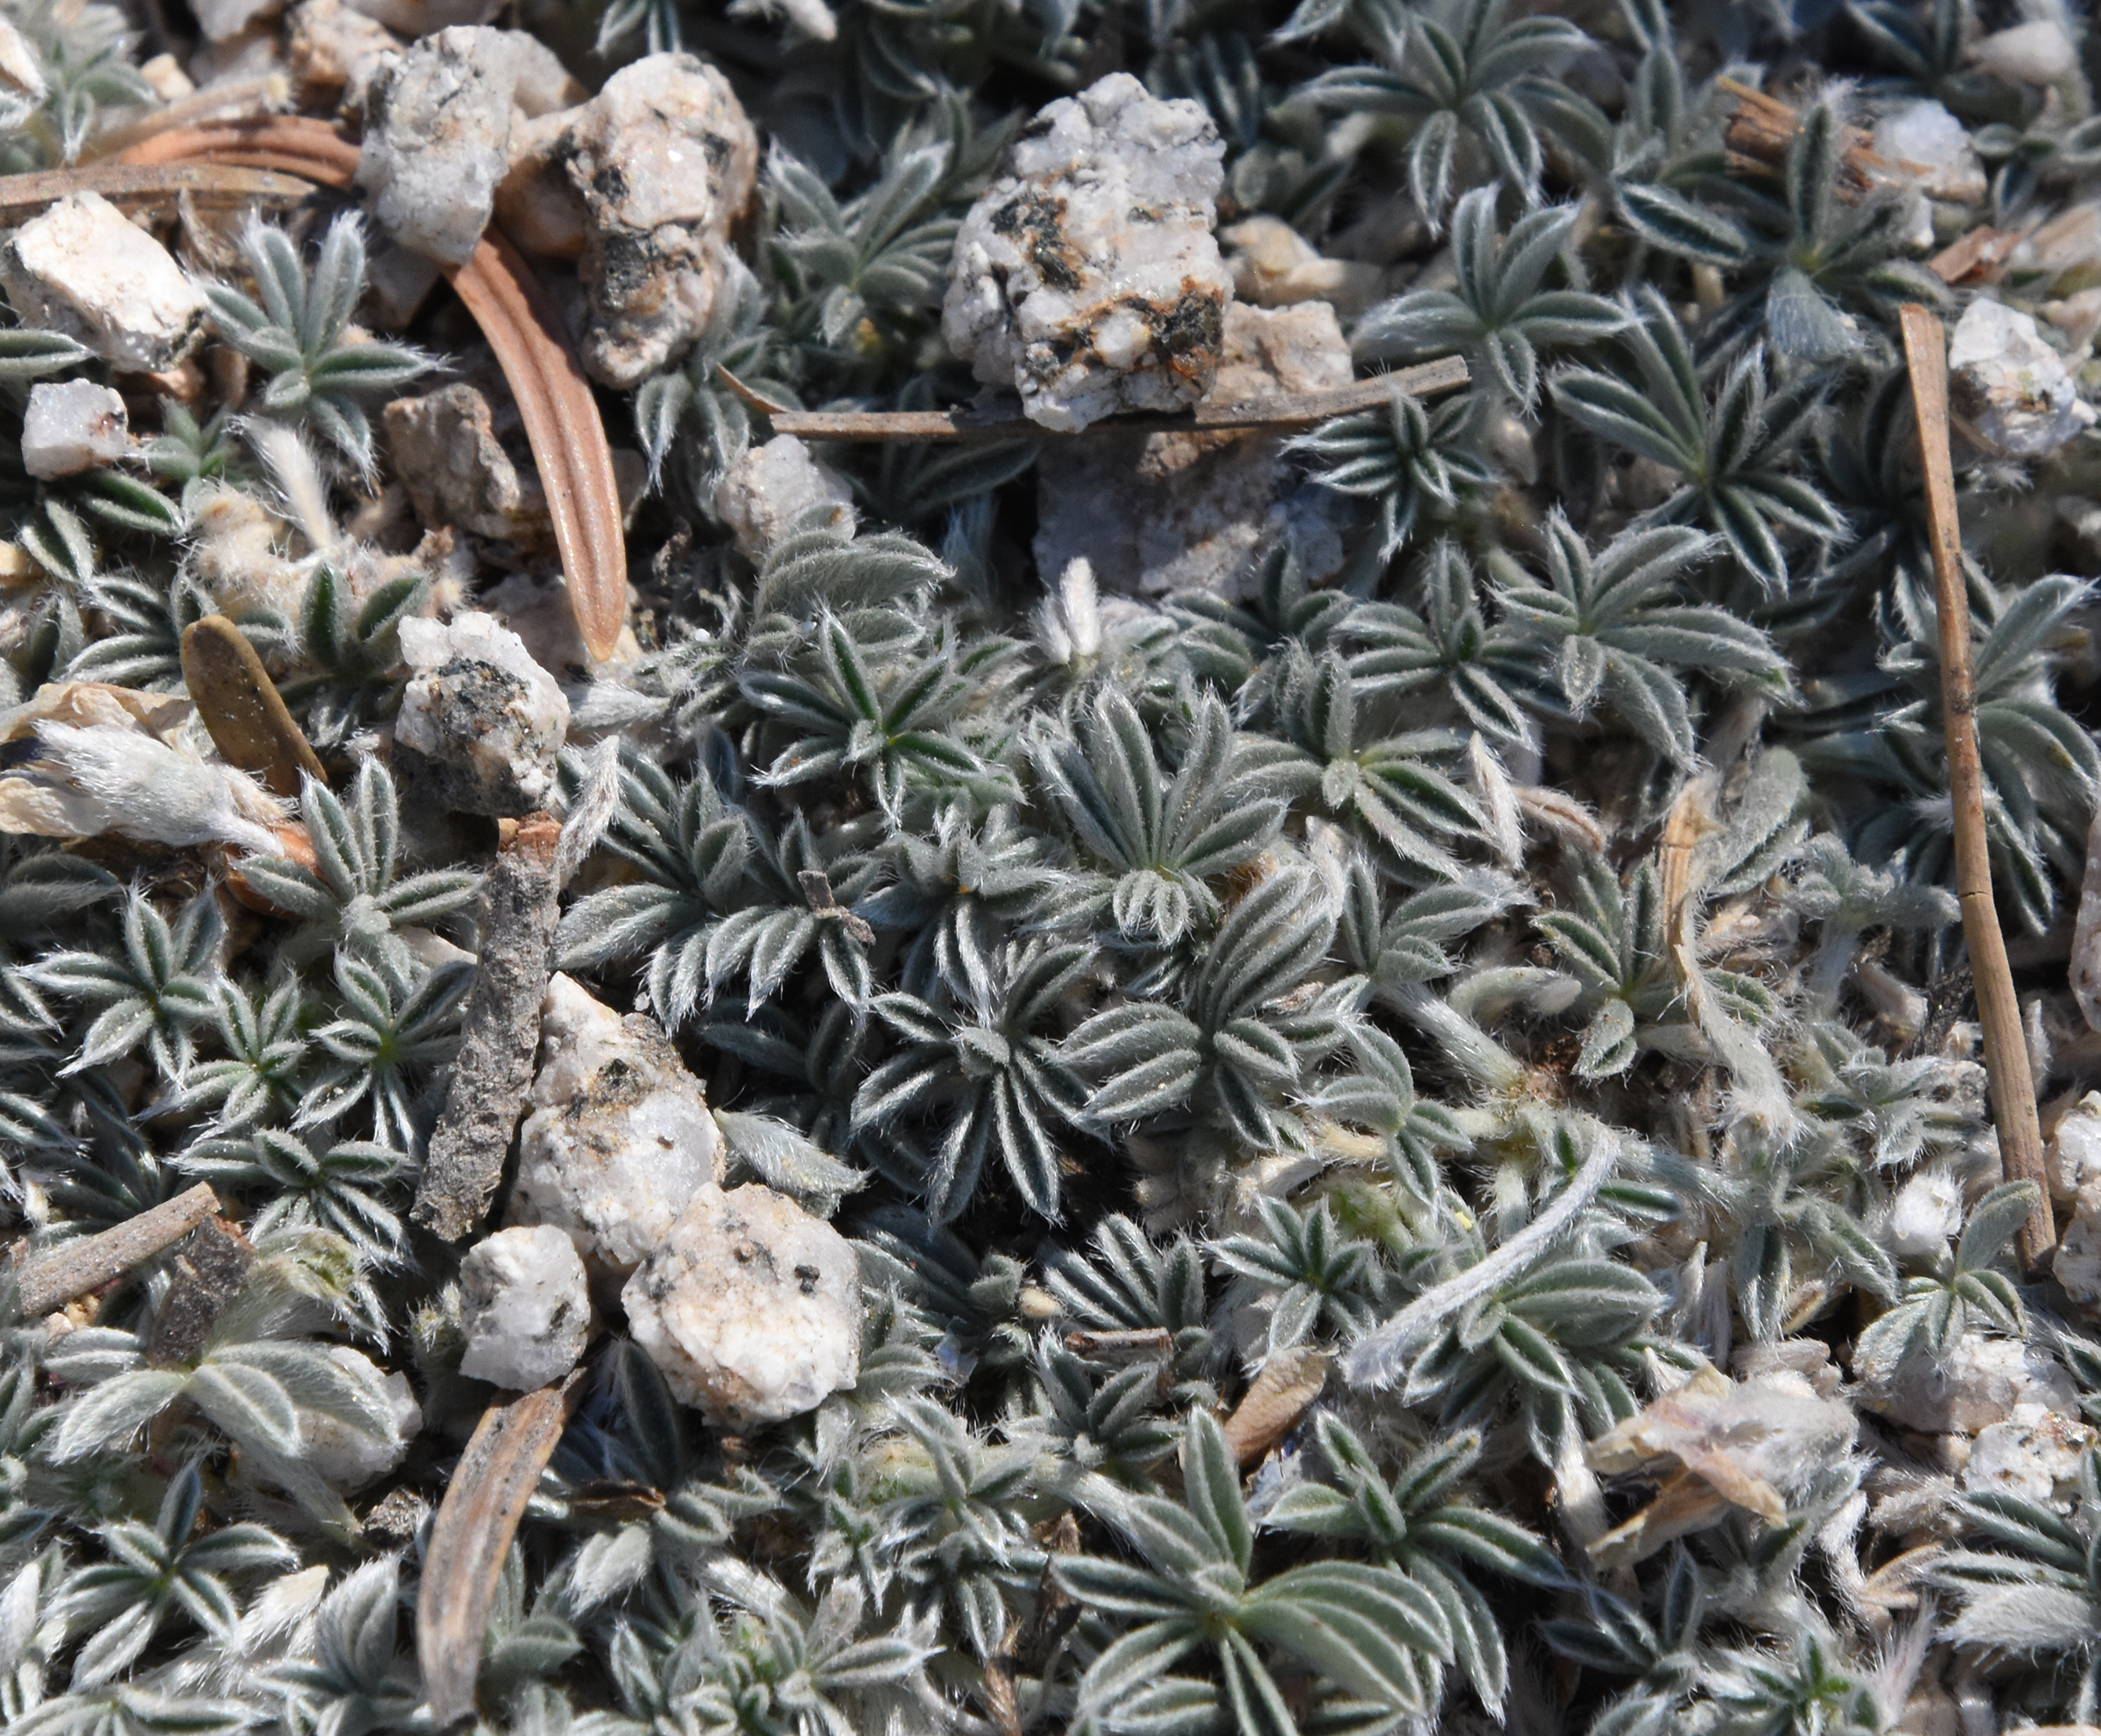 Brewer's Lupine leaves forming a tight mat in the gravelly soil.